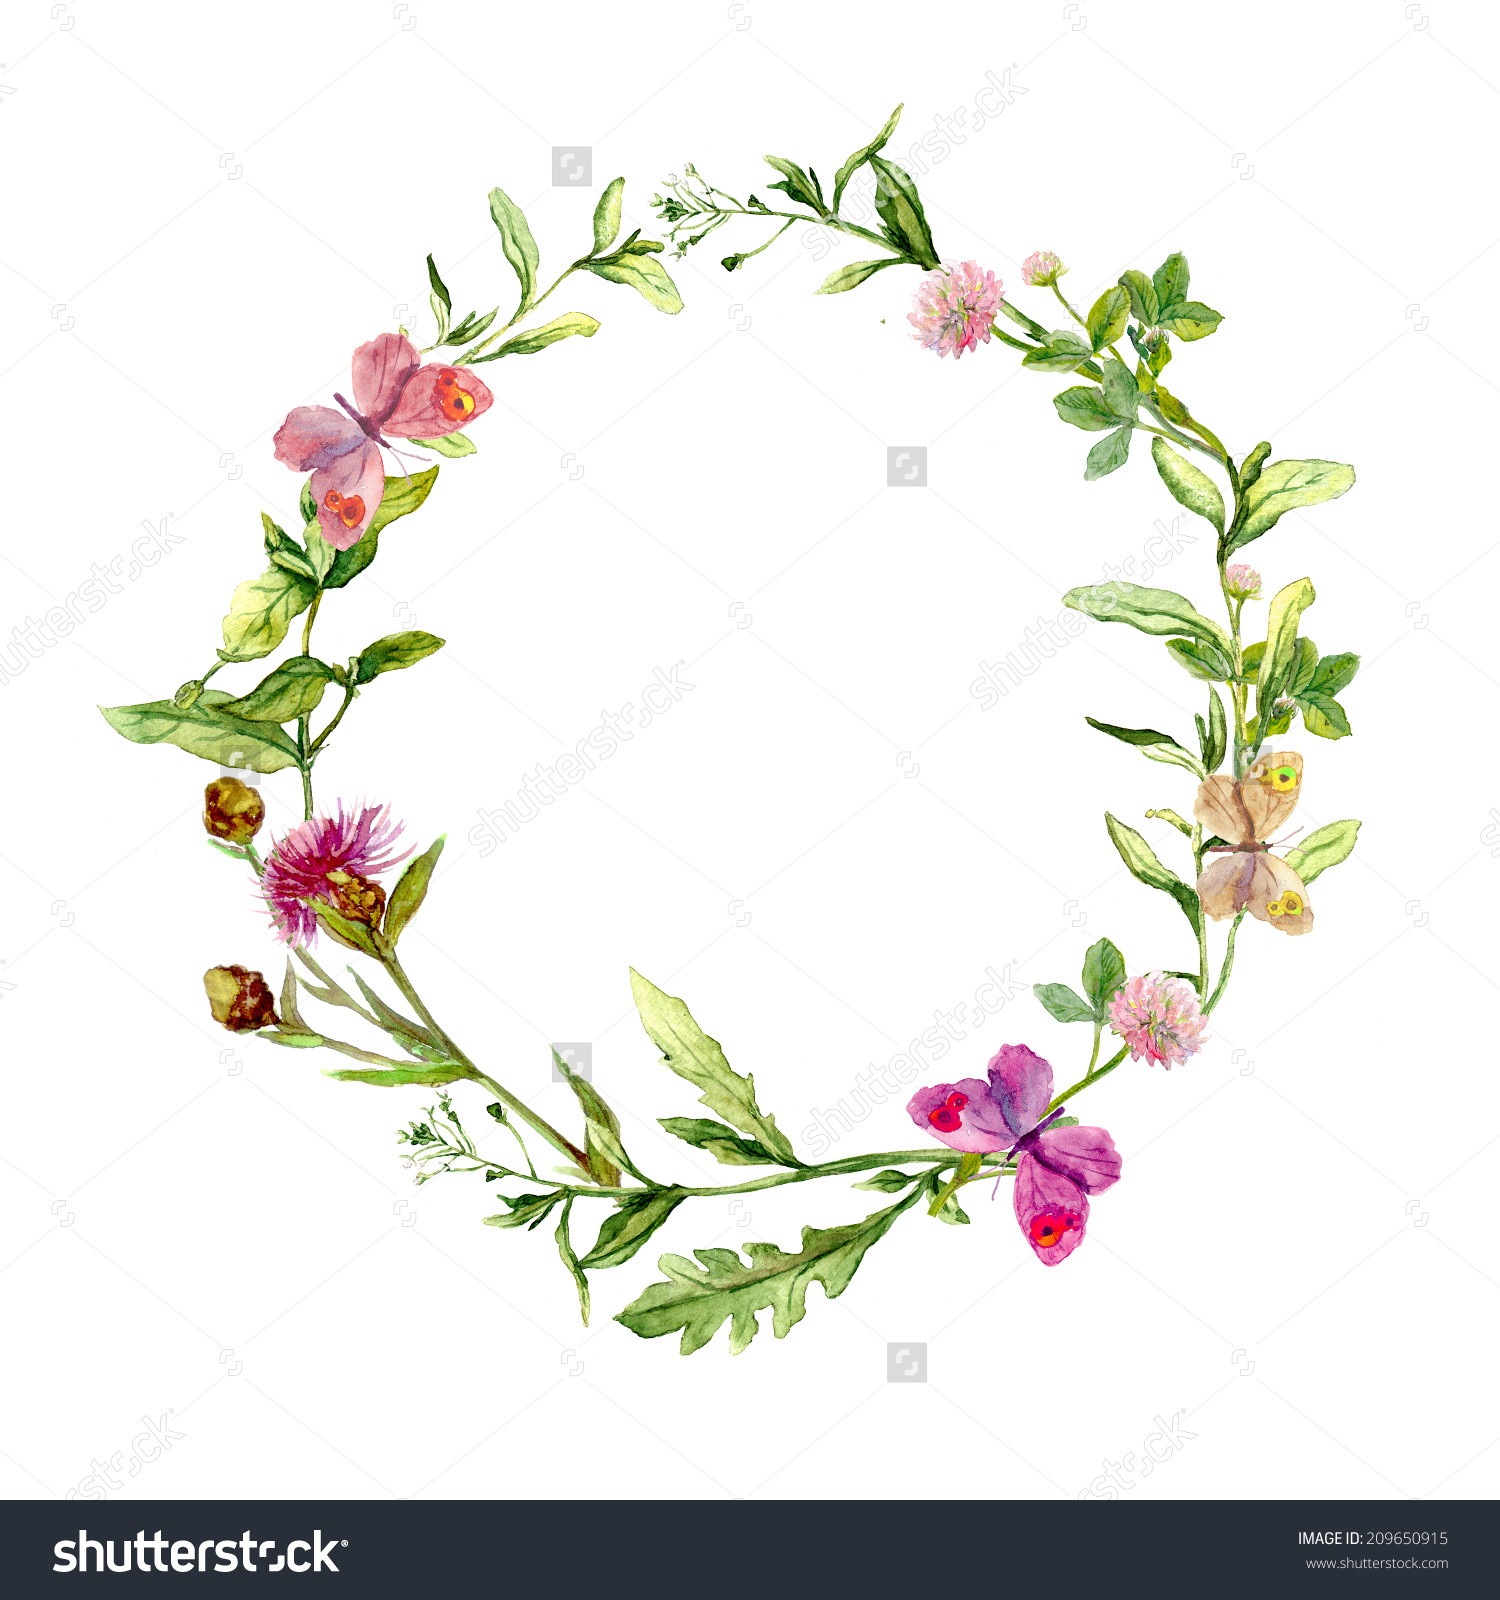 Wreath Border Frame Summer Herbs Meadow Stock Illustration.